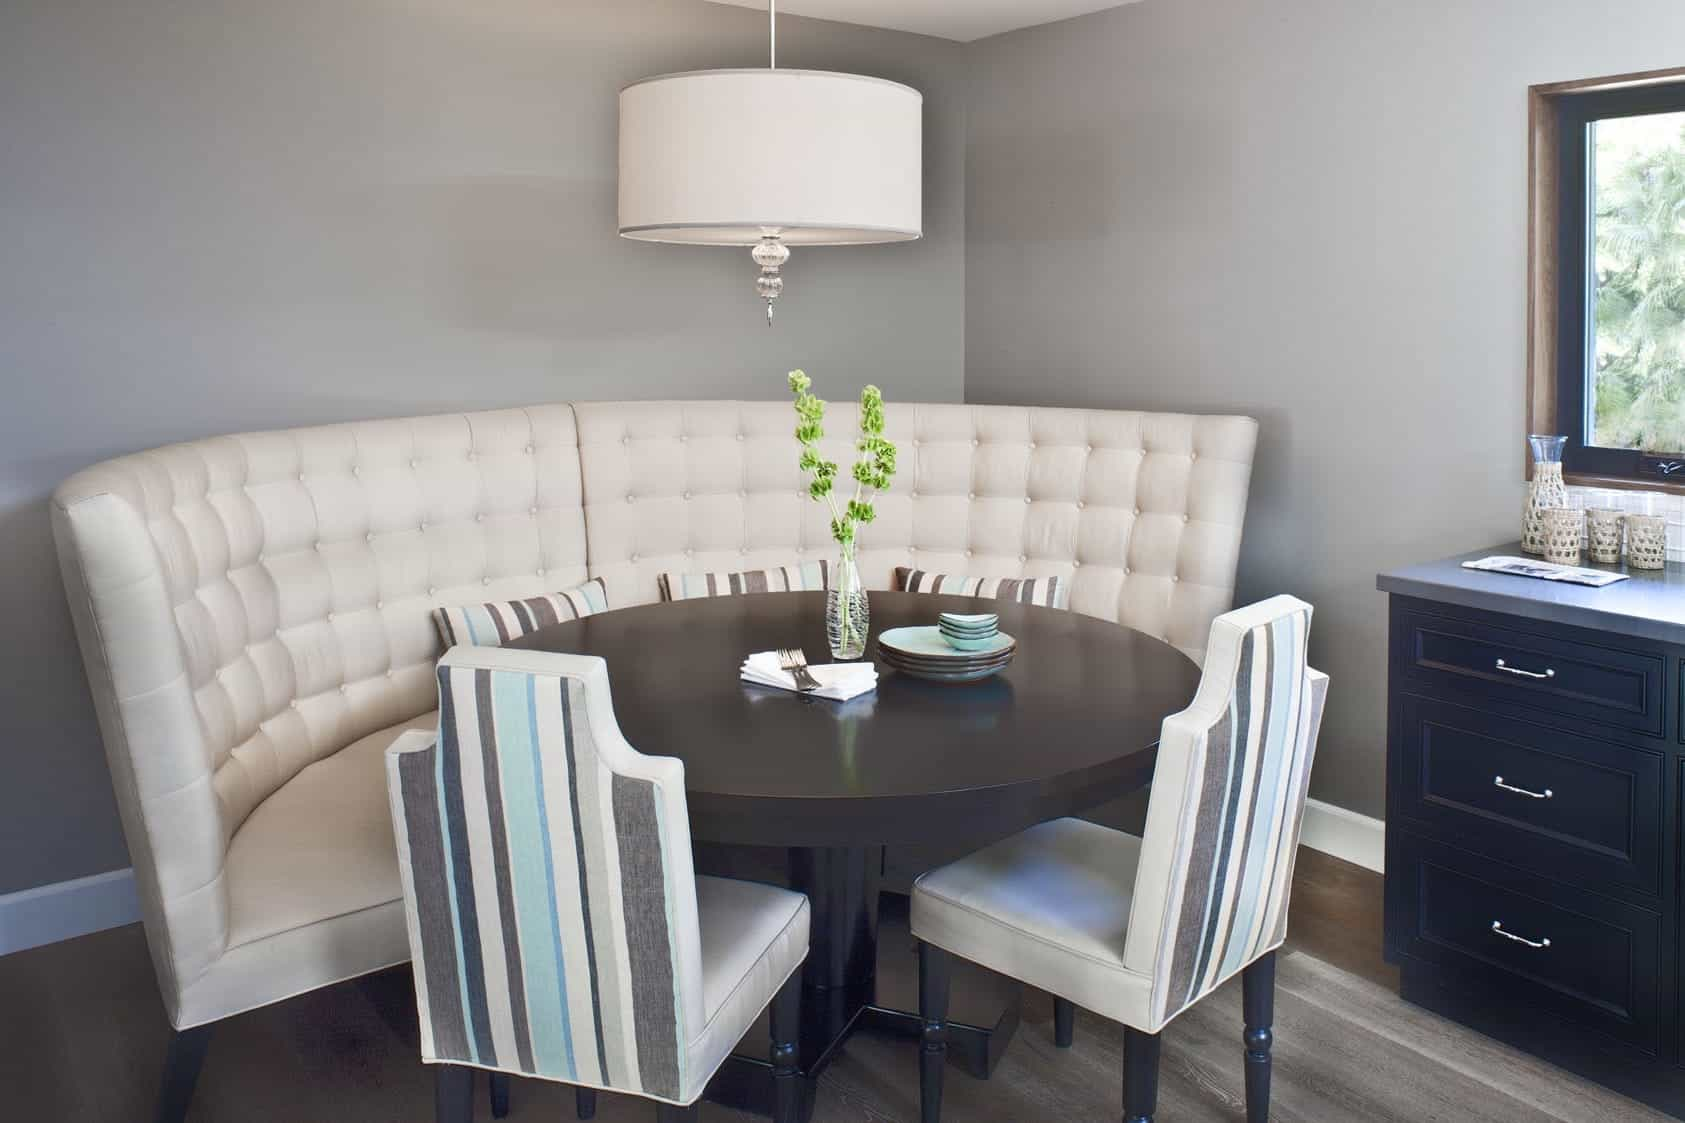 Corner Dining Nook With Tufted Bench And Striped Chairs (View 15 of 25)